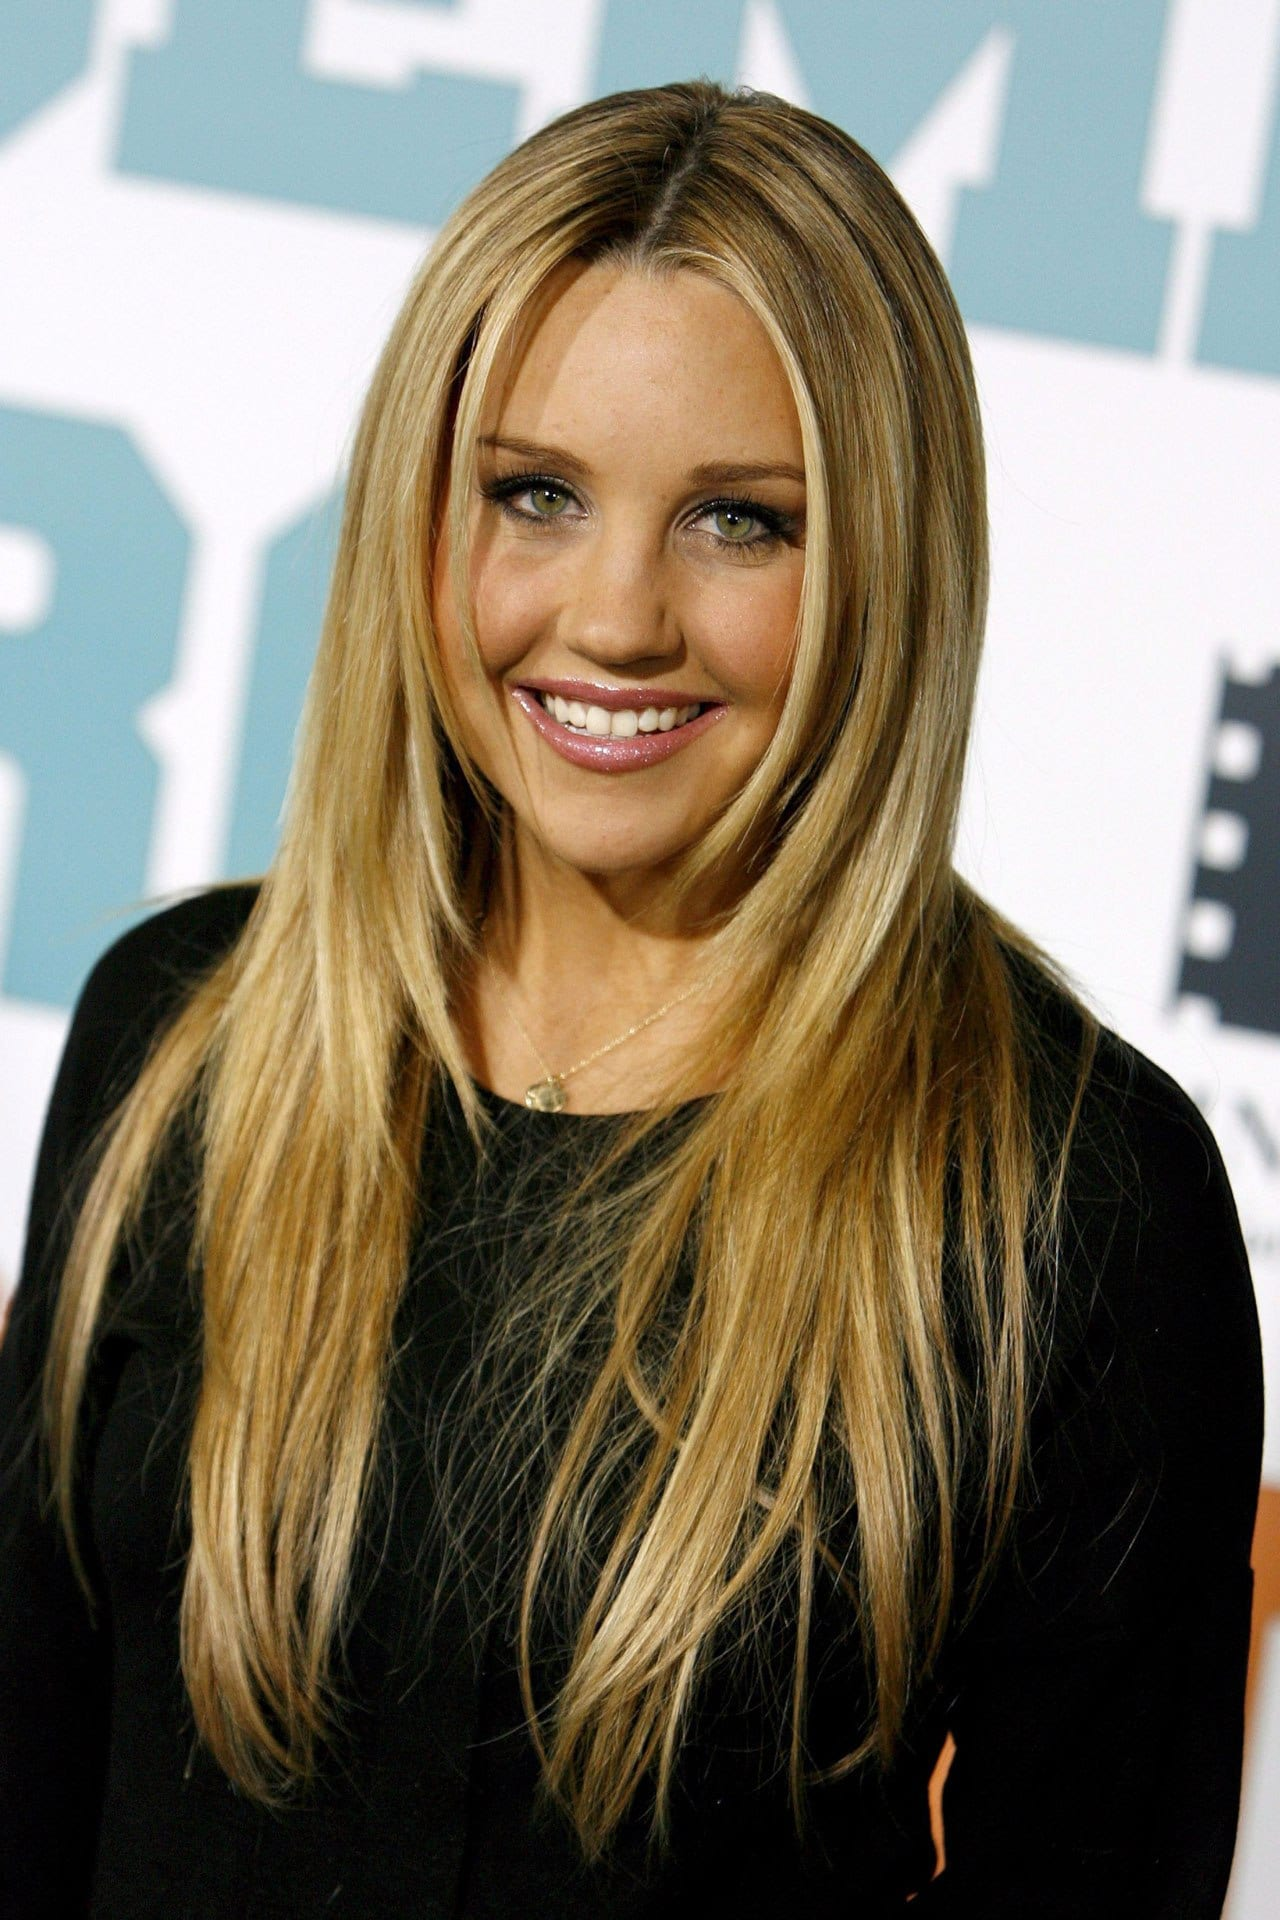 Amanda Bynes opens up about her drug addiction and the future